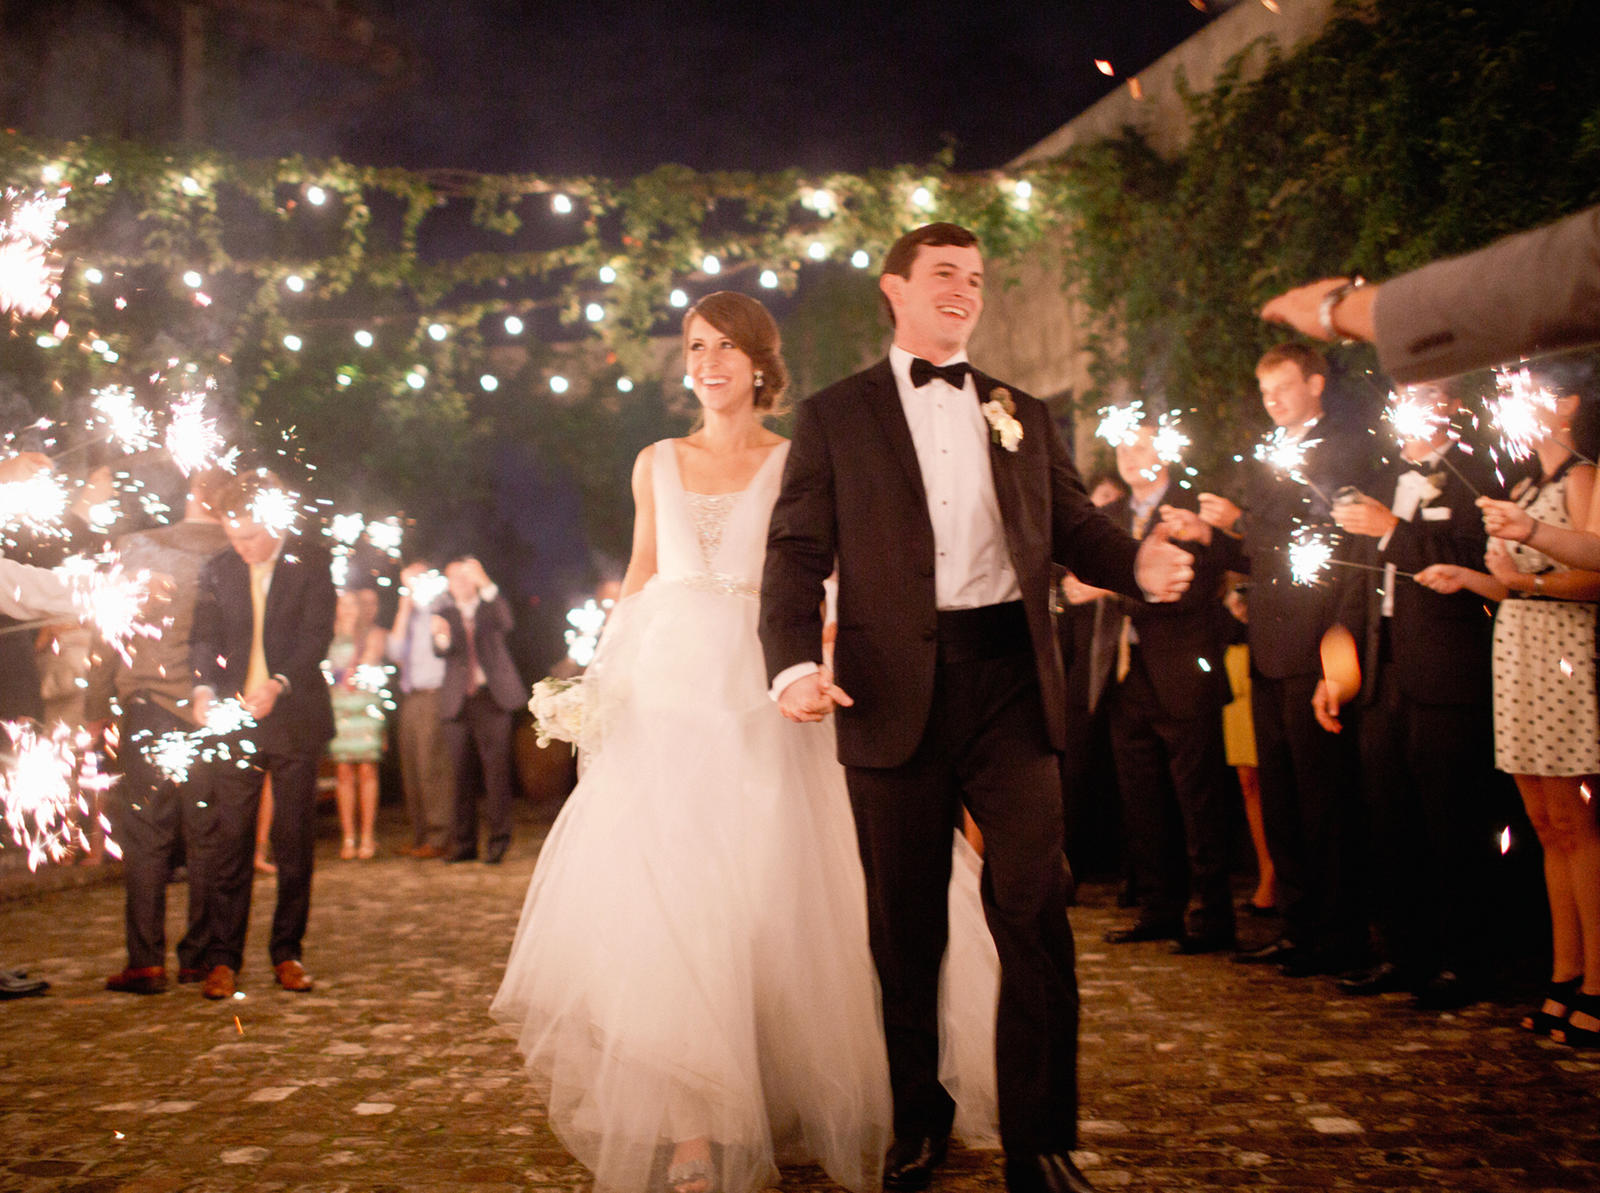 Wedding Photography | A bride and groom walk together as wedding guests wave sparklers.